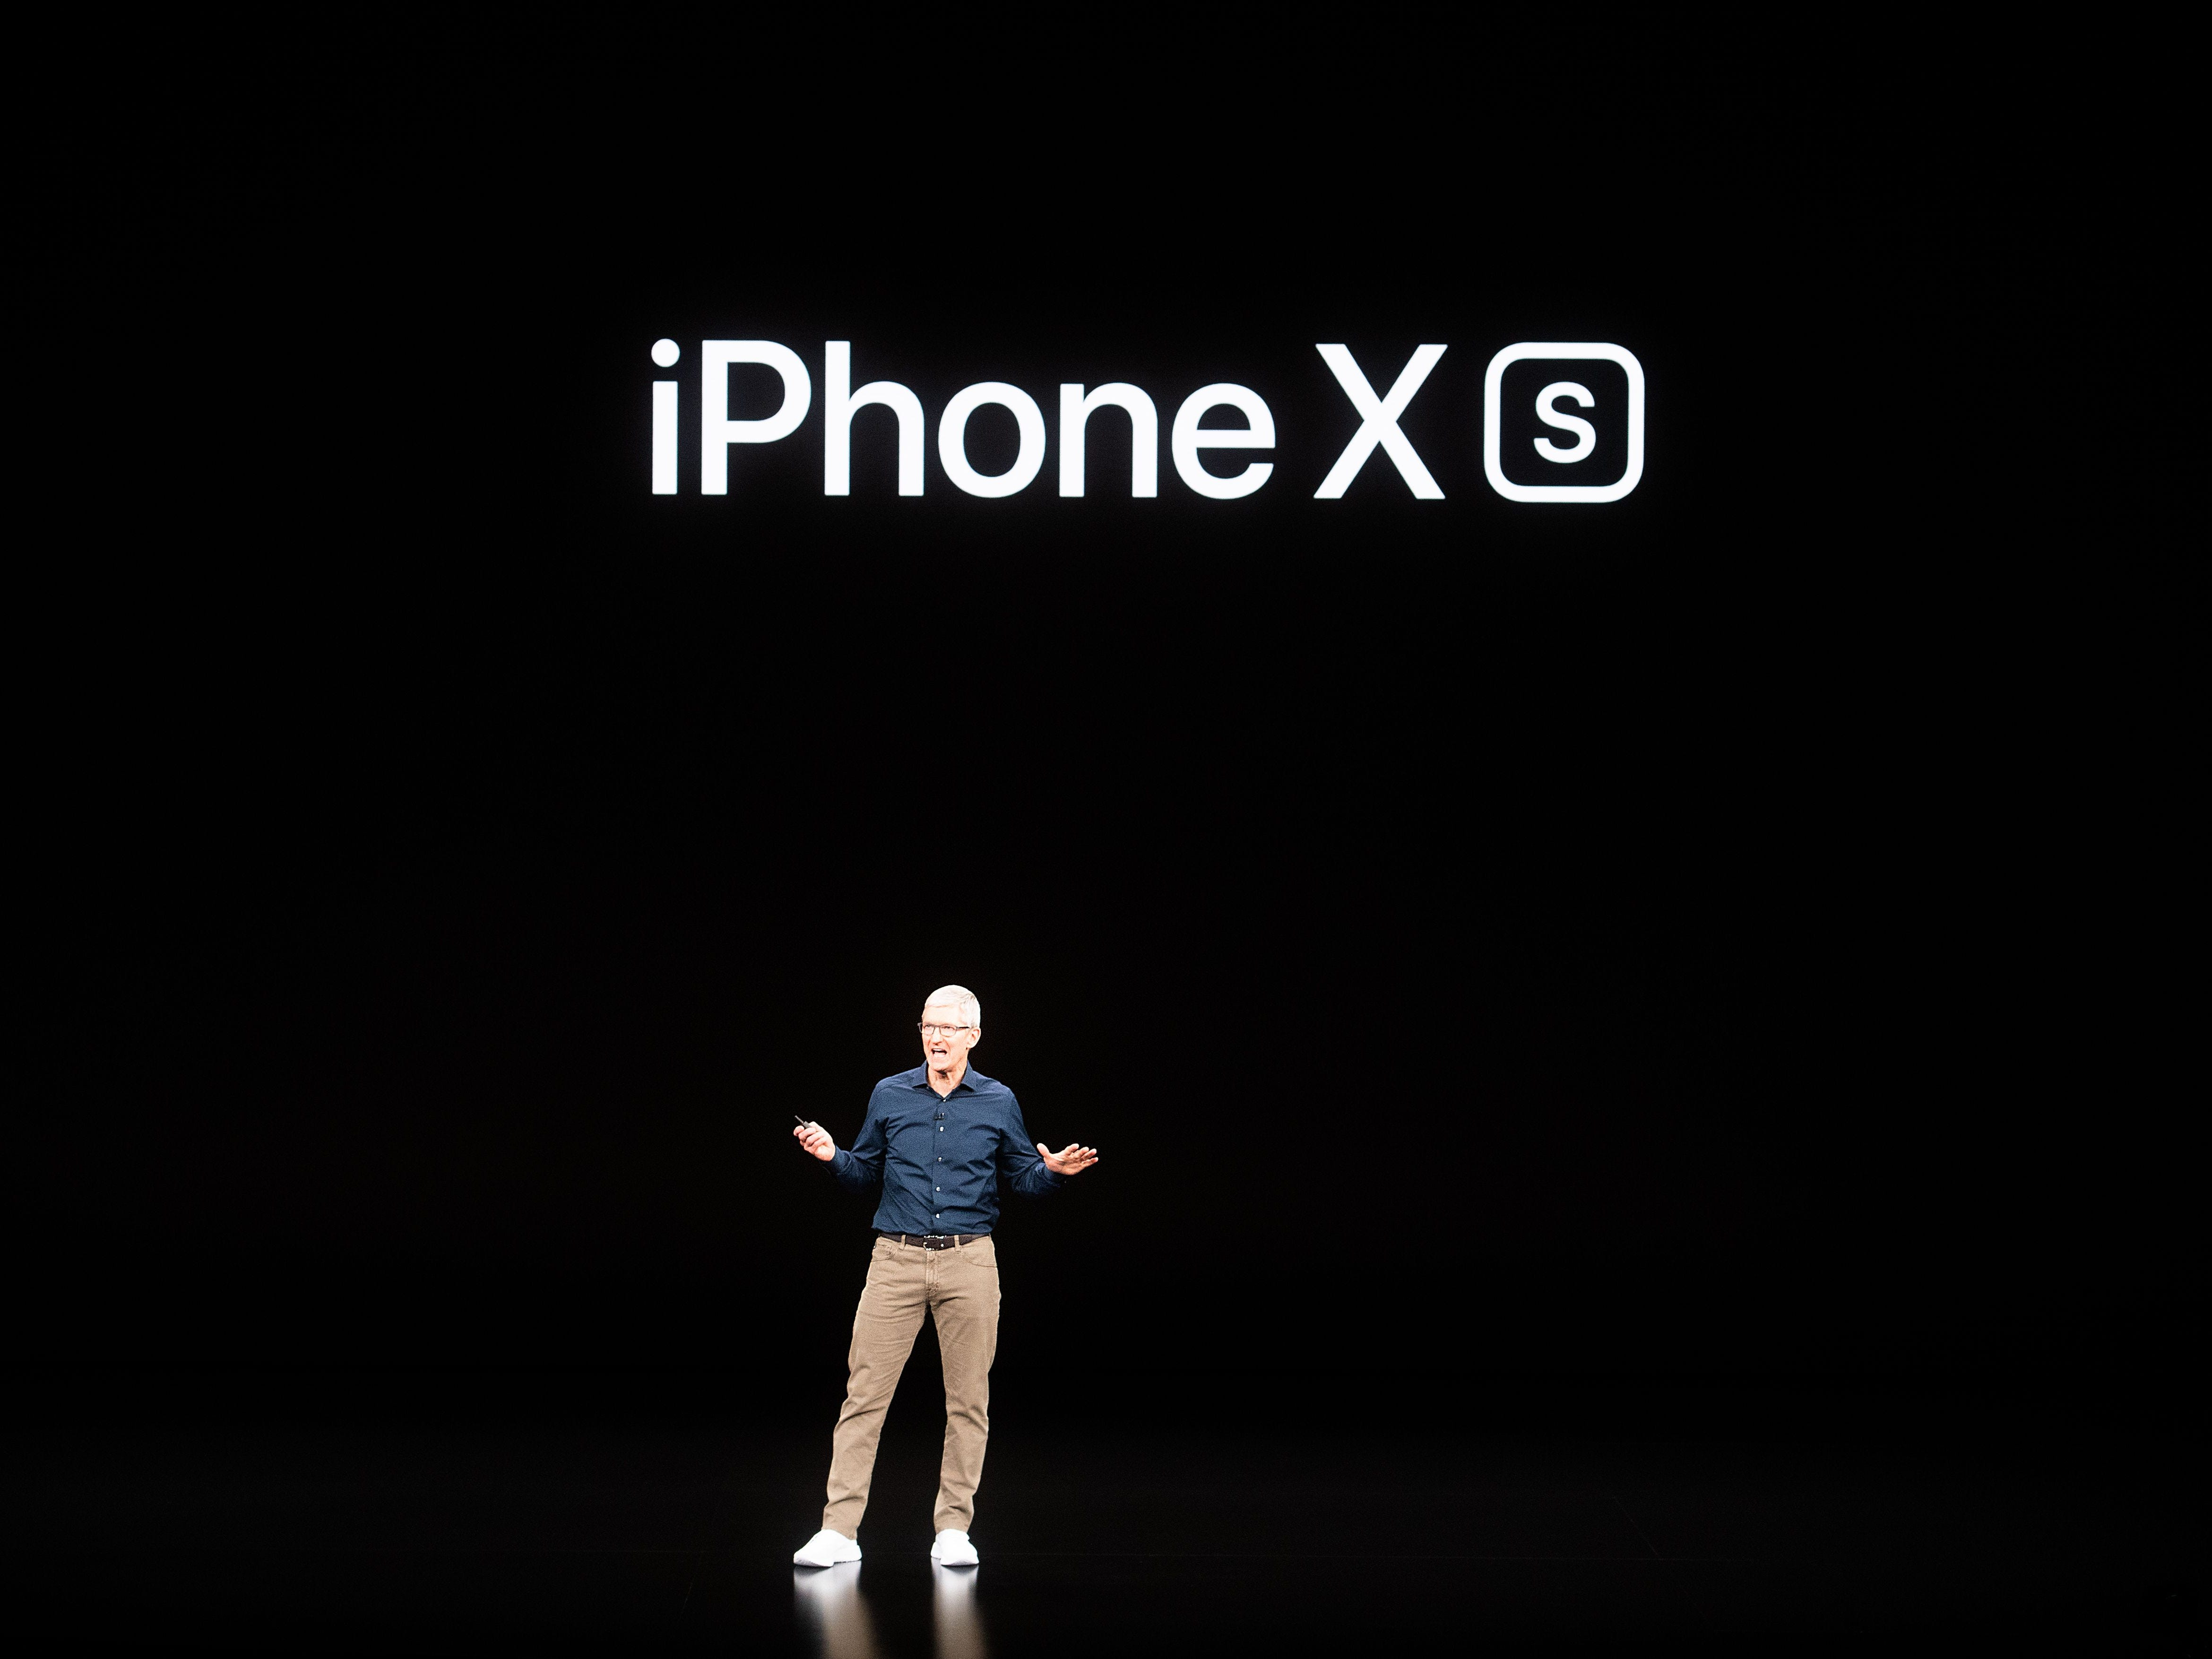 Apple CEO Tim Cook introduces the iPhone XS during an event on September 12, 2018, in Cupertino, Calif.